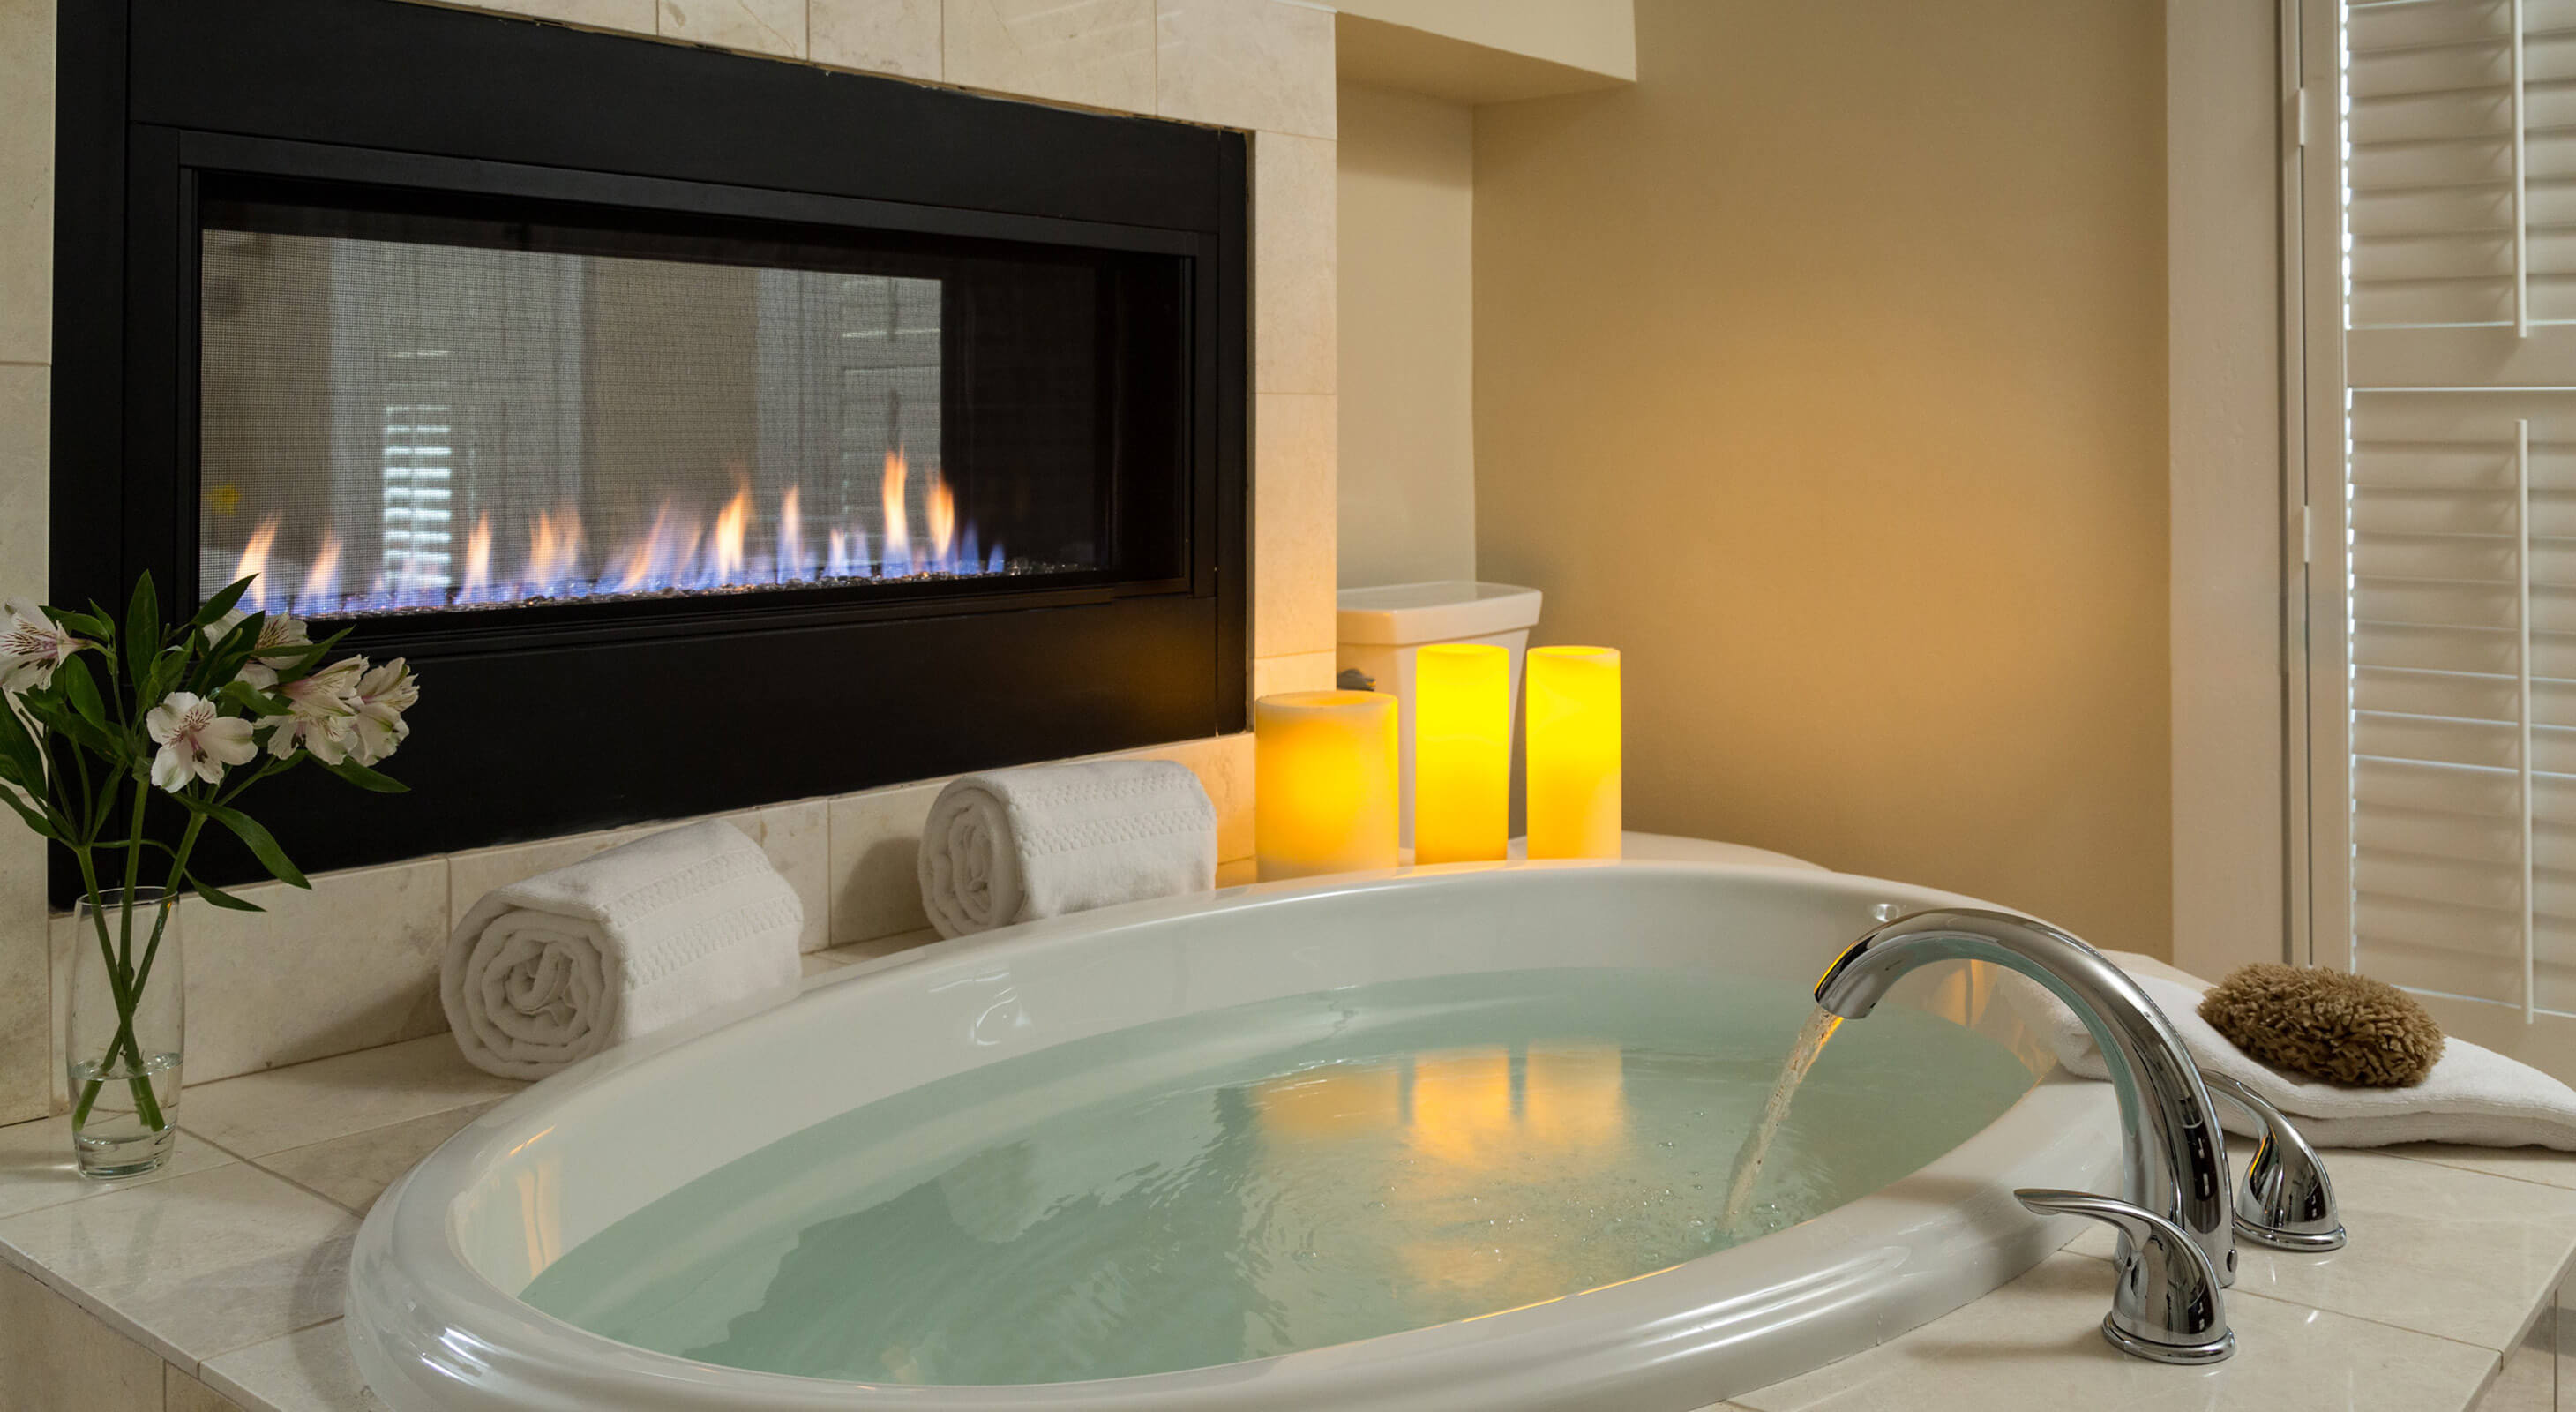 Room 7 soaking tub and fireplace